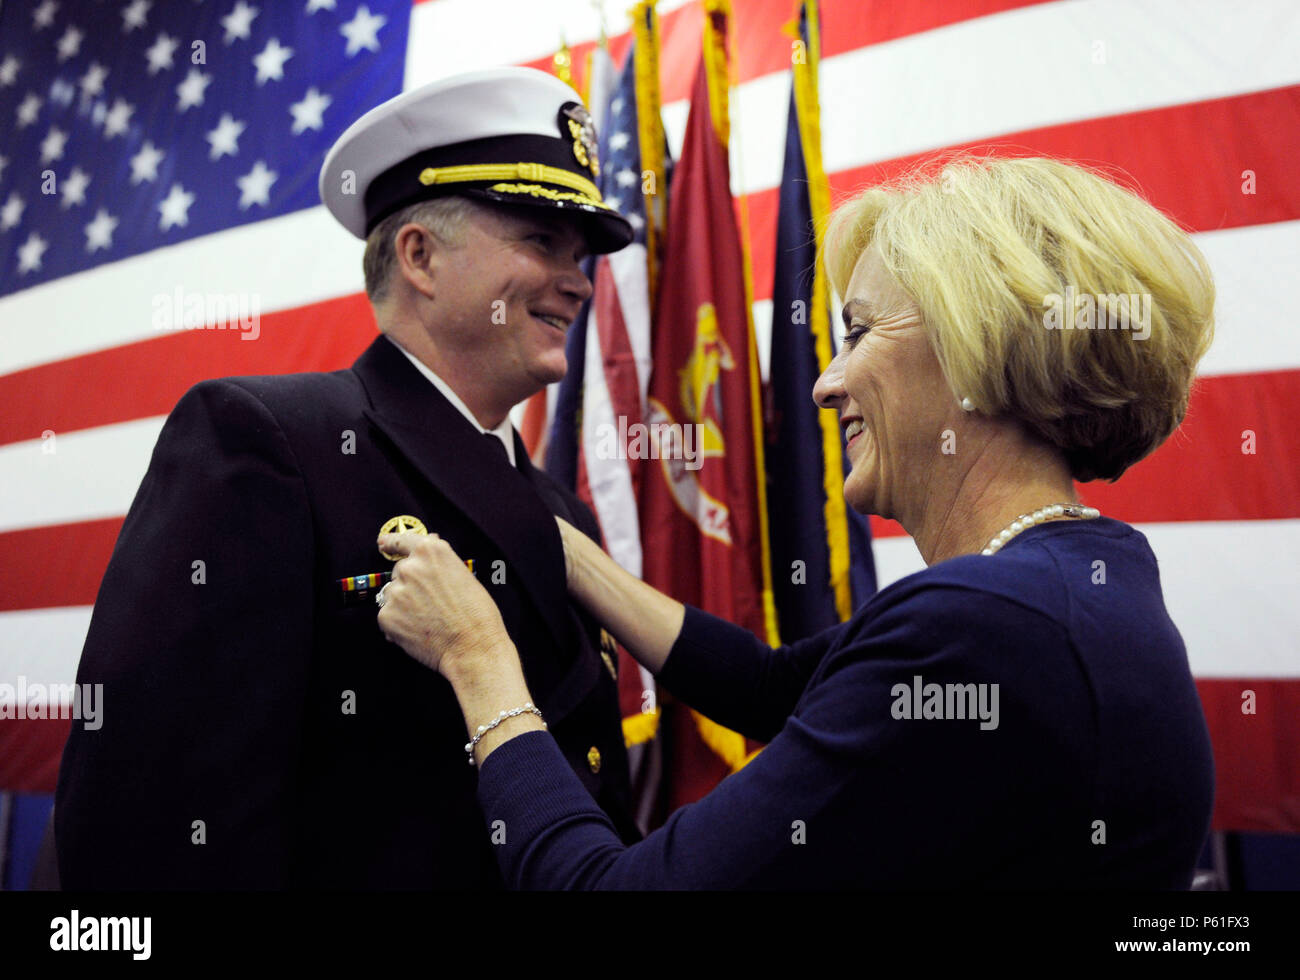 NEWPORT NEWS, Va., (April 8, 2016) Peggy McCormack, Capt. Richard McCormack's wife, moves his command-at-sea device from the left side of his jacket to the right signifying he has assumed command of Pre-Commissioning Unit Gerald R. Ford (CVN 78).  Ford is the first of a new class of aircraft carriers currently under construction by Huntington Ingalls Newport News Shipbuilding. (U.S. Navy photo by Mass Communication Specialist Seaman Cathrine Mae O. Campbell/Released) - Stock Image